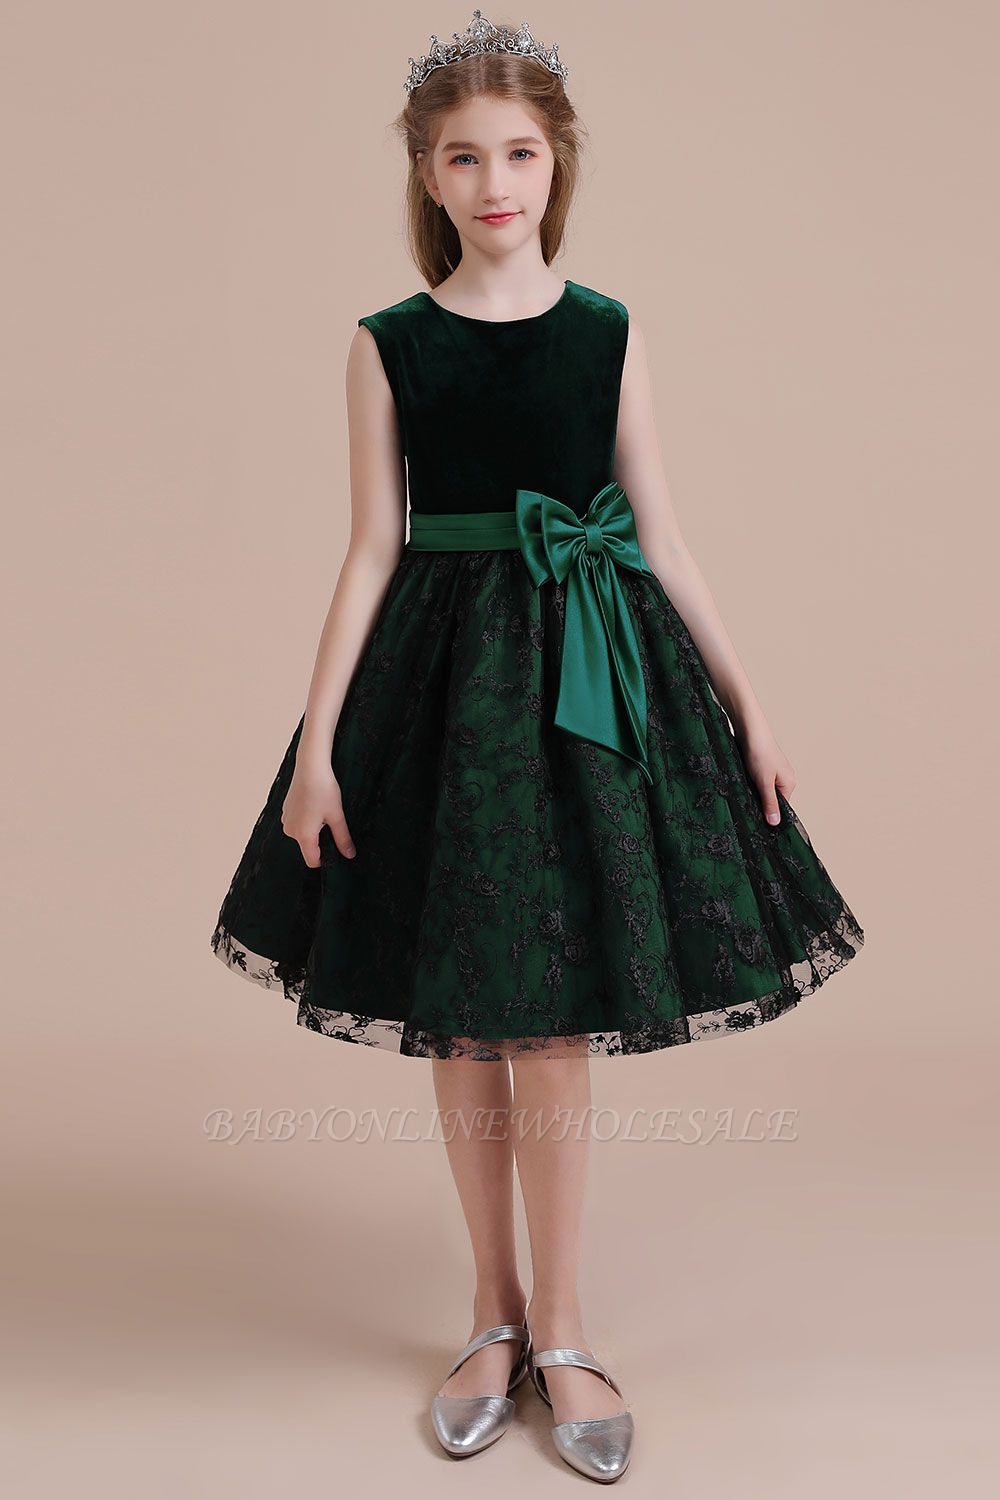 Autumn Knee Length Flower Girl Dress | Lace Velvet A-line Little Girls Pegeant Dress Online